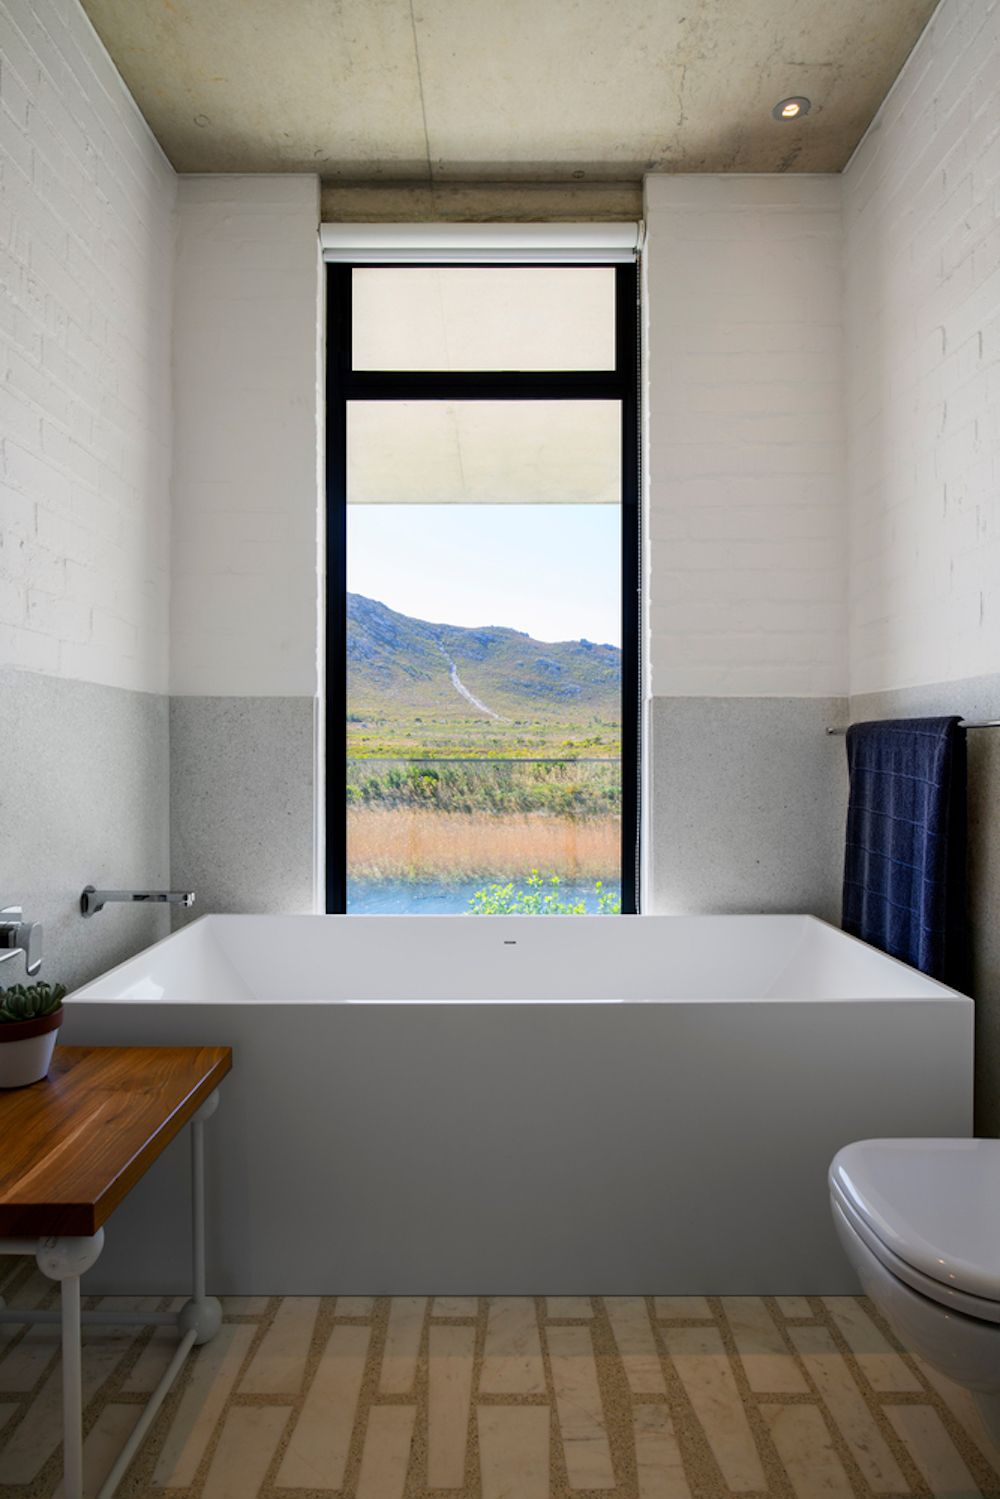 Even the bathrooms frame some really beautiful views of the river and the distant mountains